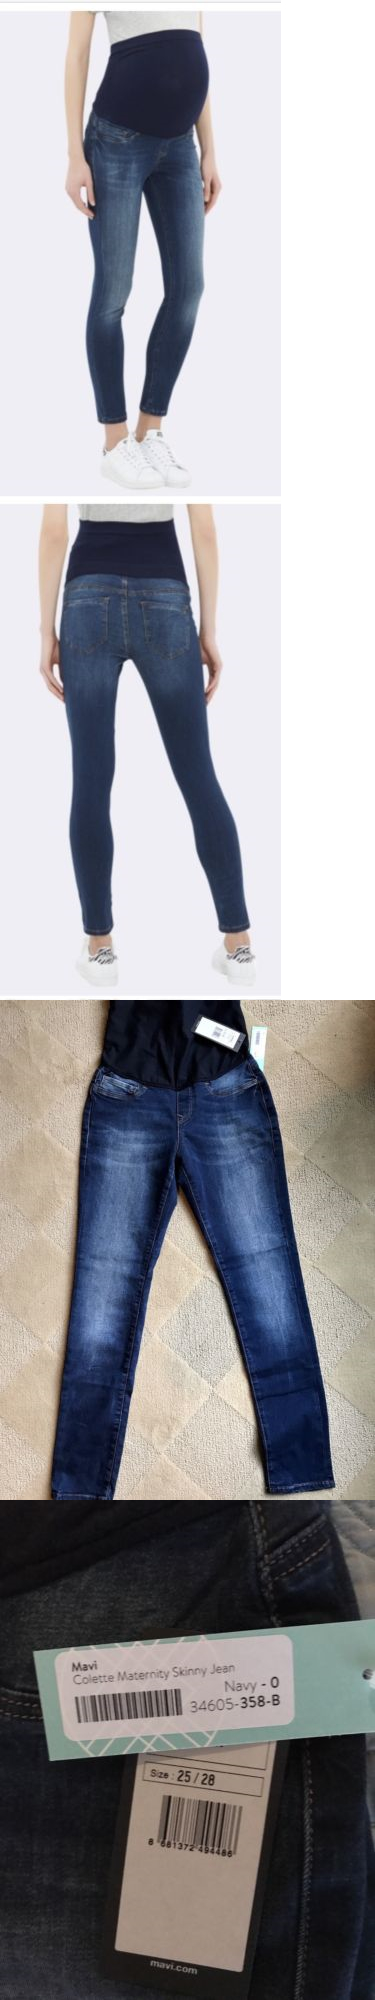 649c2c6ac74a1 Jeans 11535: Nwt Stitch Fix Mavi Maternity Skinny Jeans Colette Vanessa  Size 0 25 25X28 Xs -> BUY IT NOW ONLY: $49.99 on eBay!